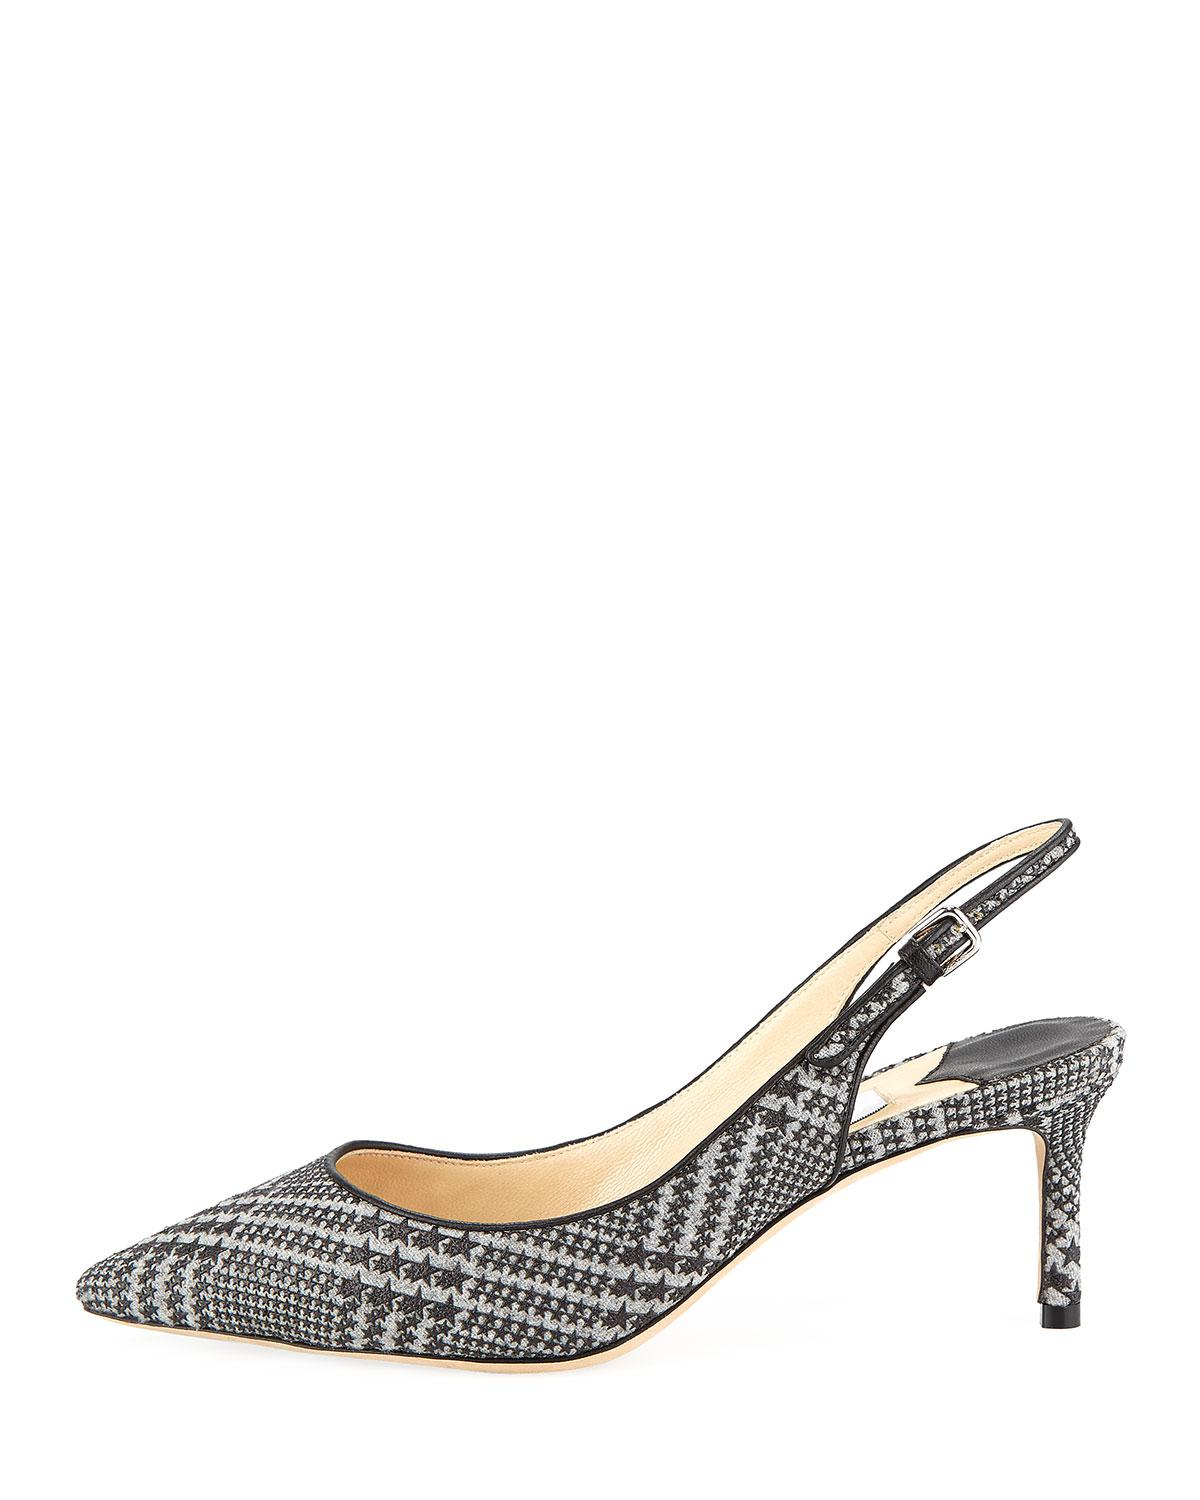 131629a9c2 Lyst - Jimmy Choo Erin 60mm Prince Of Stars Flannel Slingback Pumps in Black